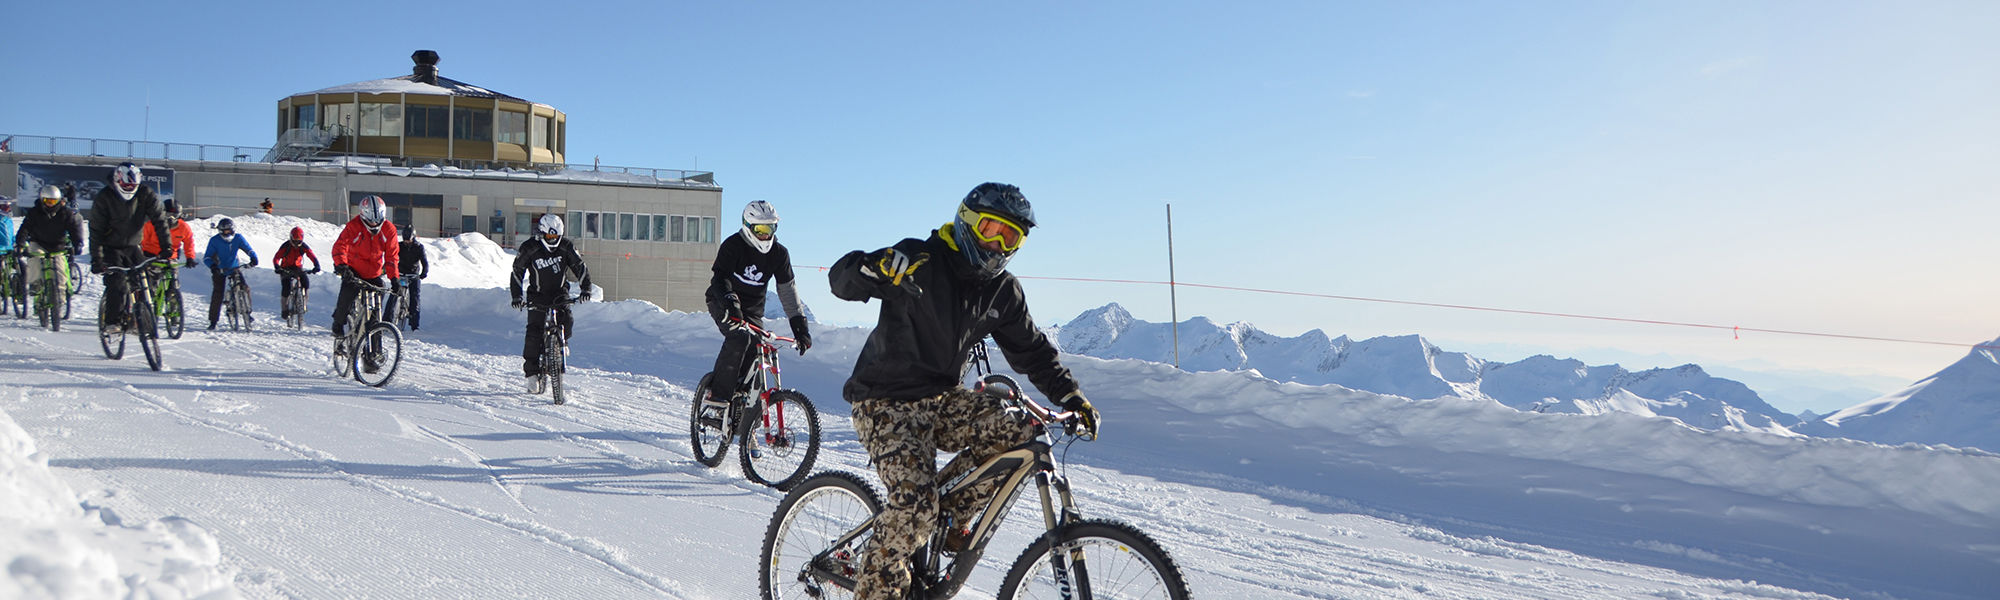 Glacier Bike Downhill Saas-Fee